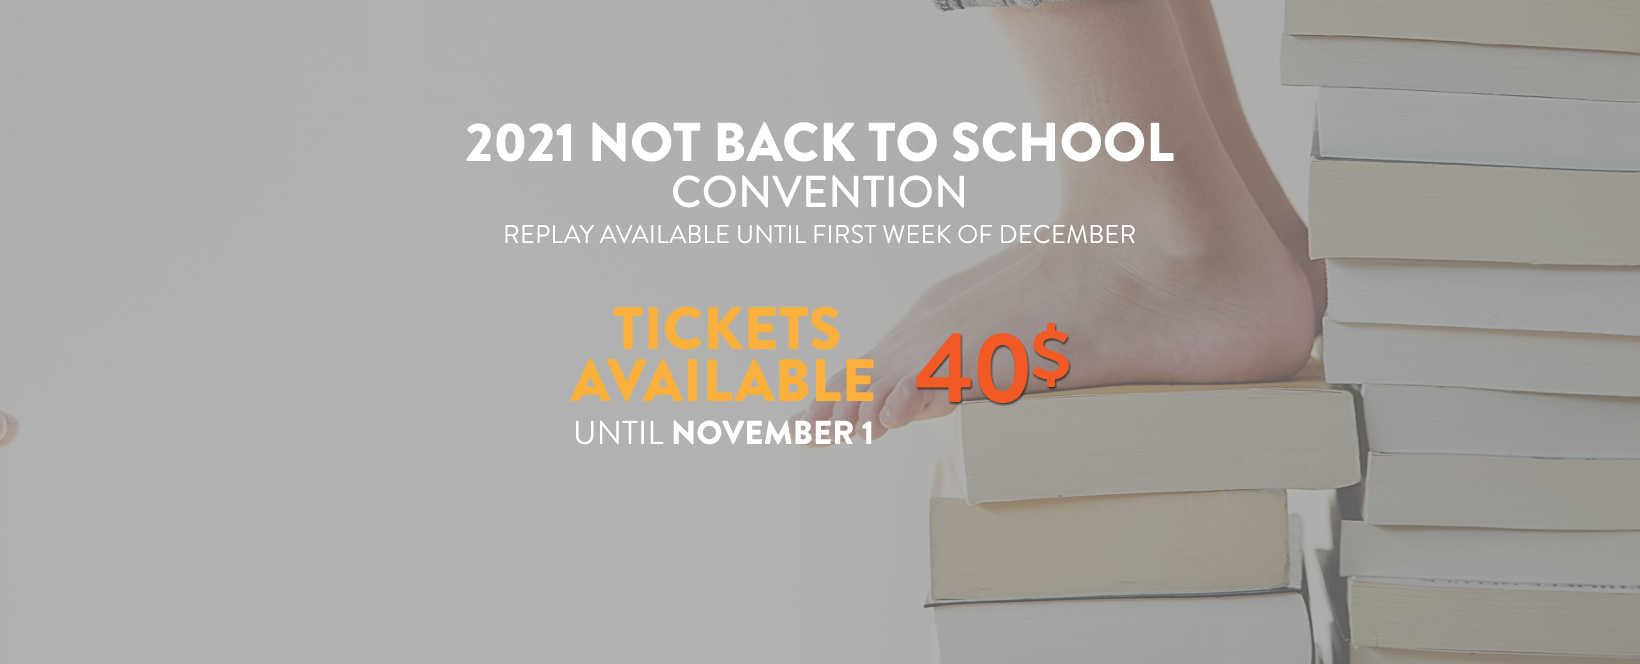 Not Back to School Convention